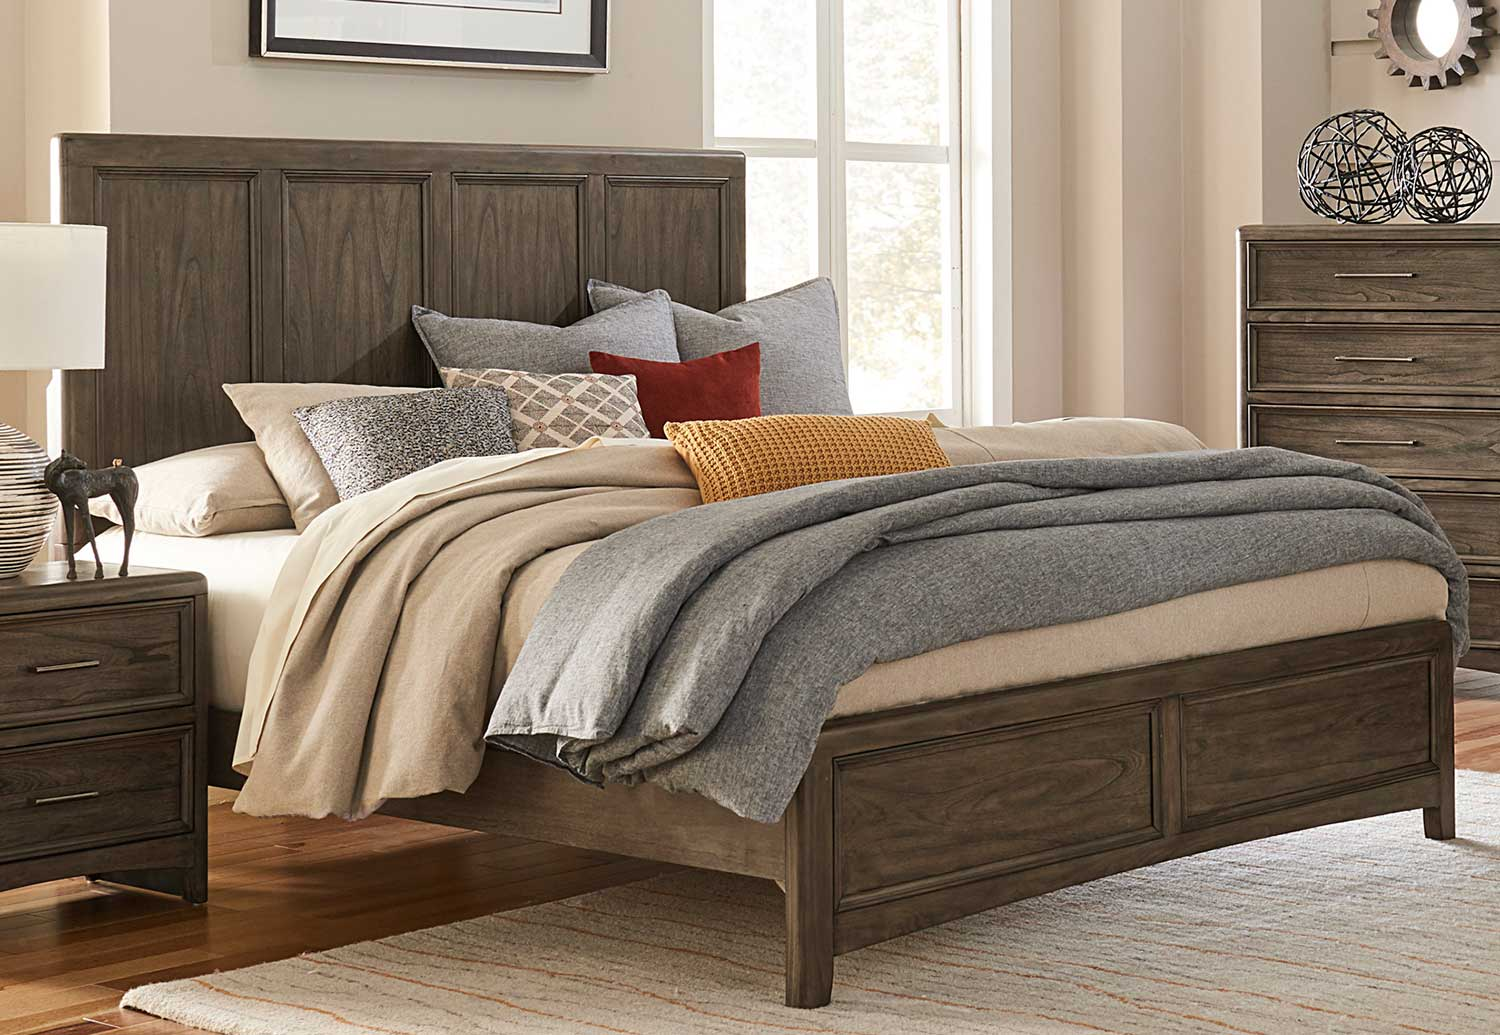 Homelegance Seldovia Bed - Brown Gray